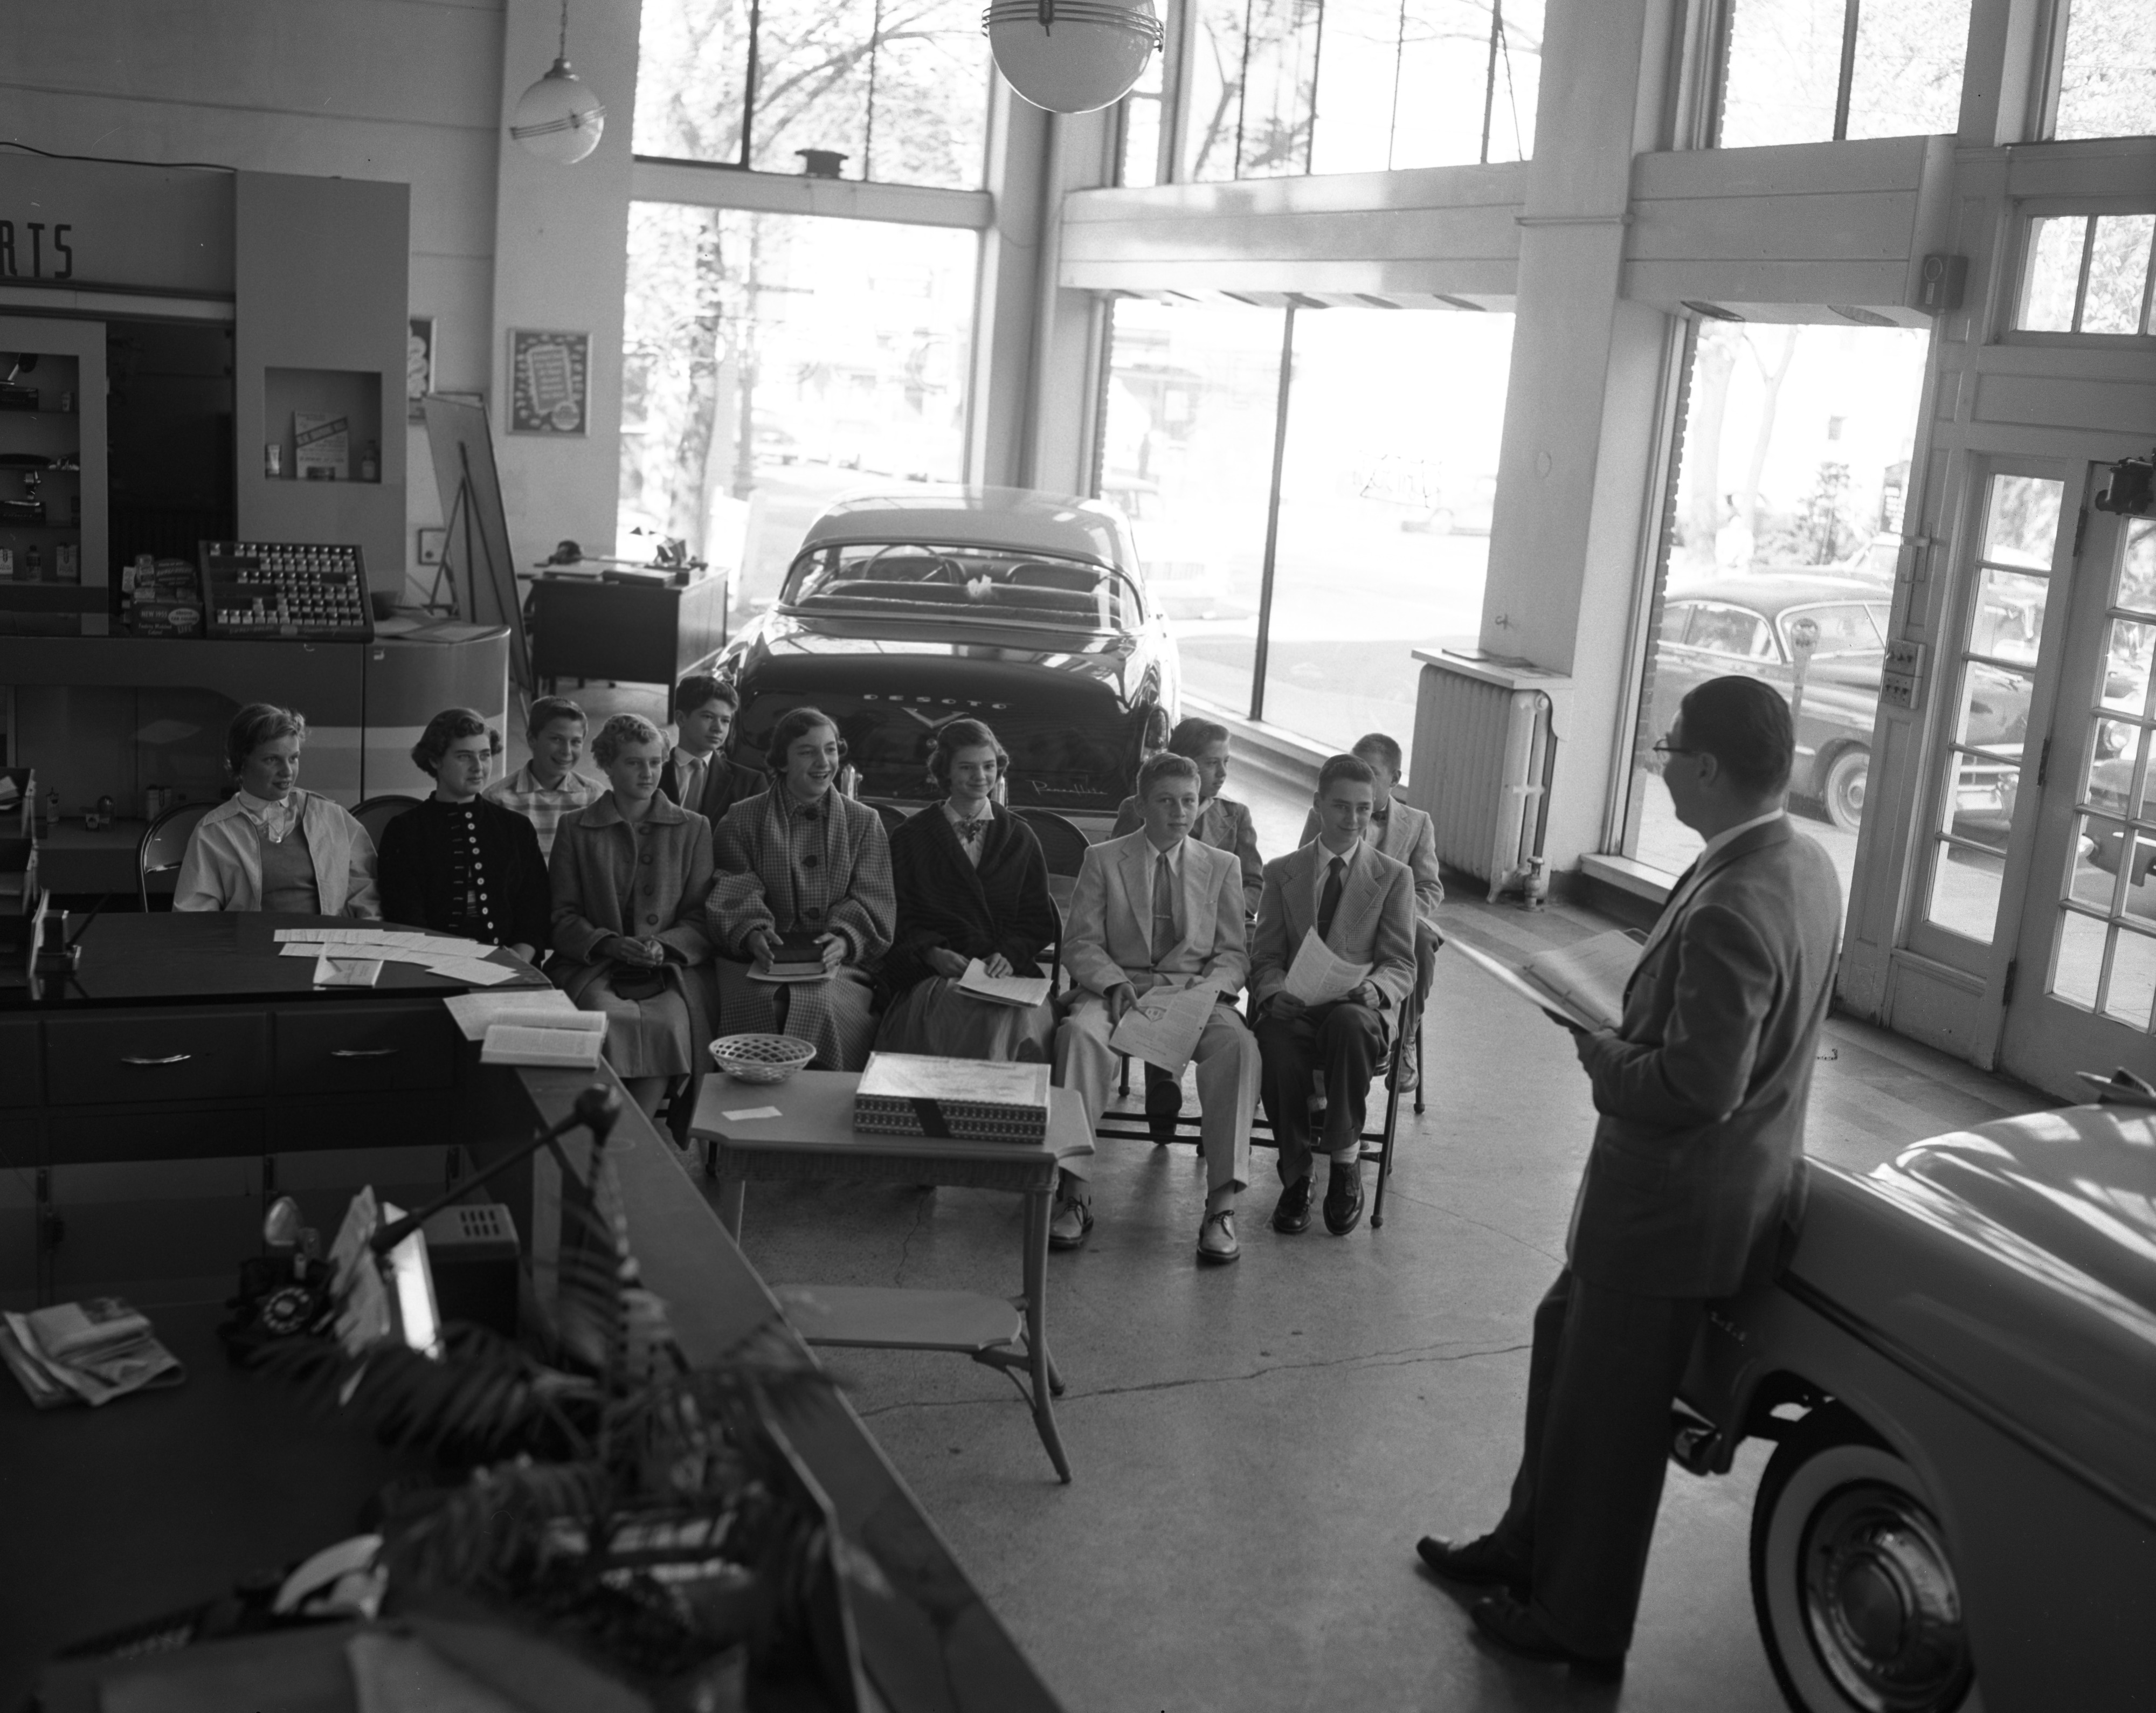 Zion Lutheran Church Sunday School Class Held In Auto Show Room, October 1955 image